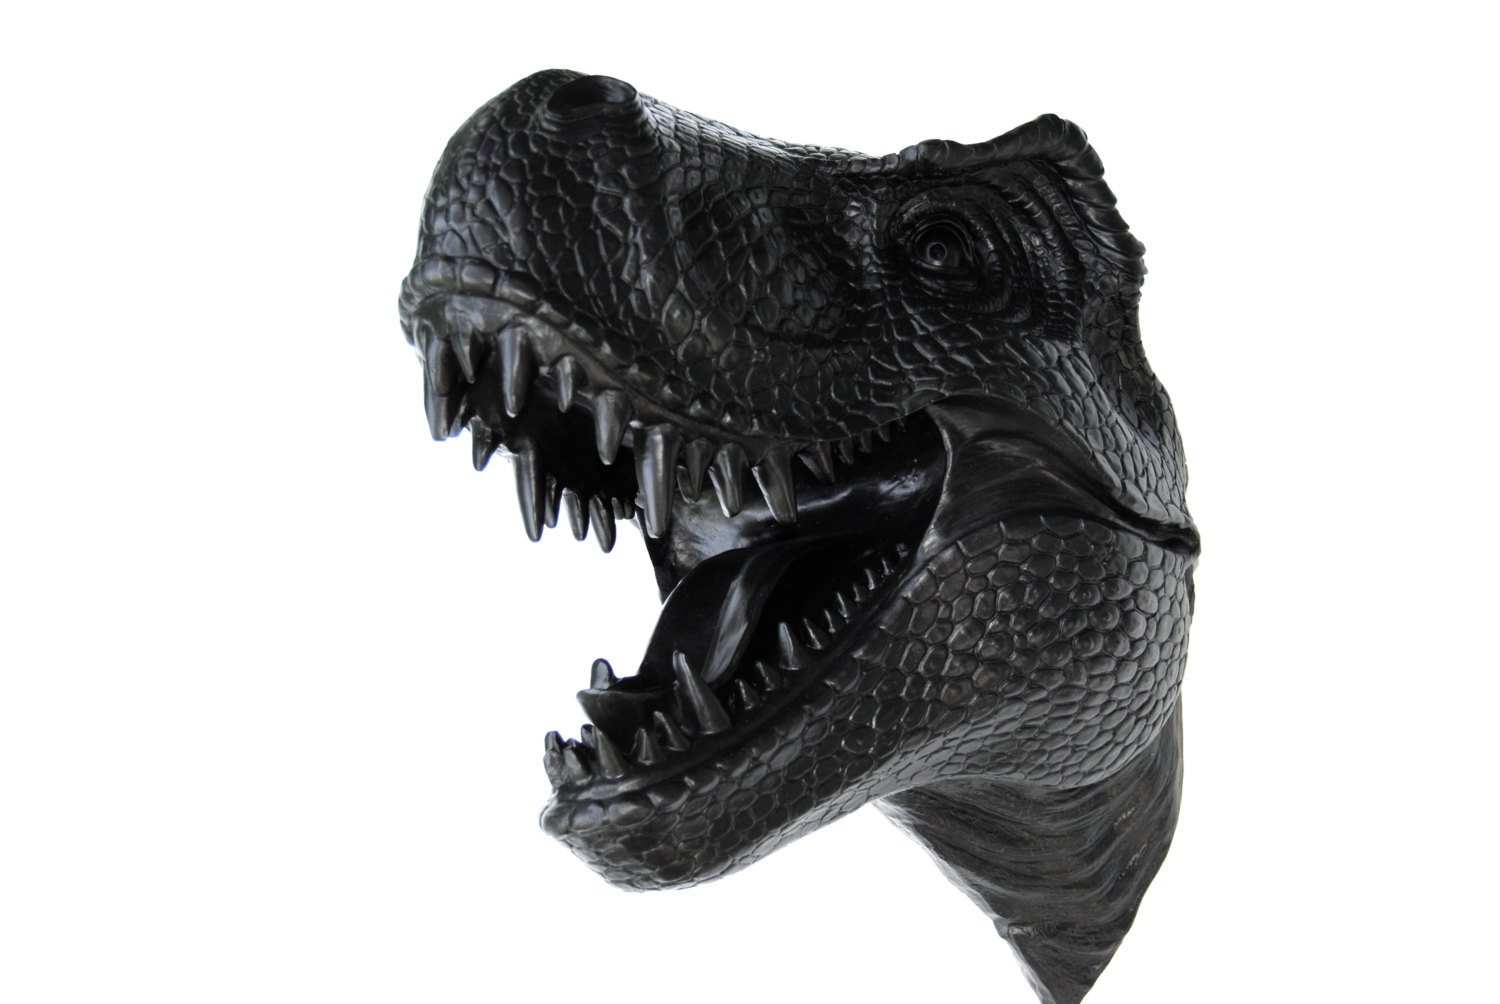 Near and Deer Faux Taxidermy T-Rex Wall Mount, Black